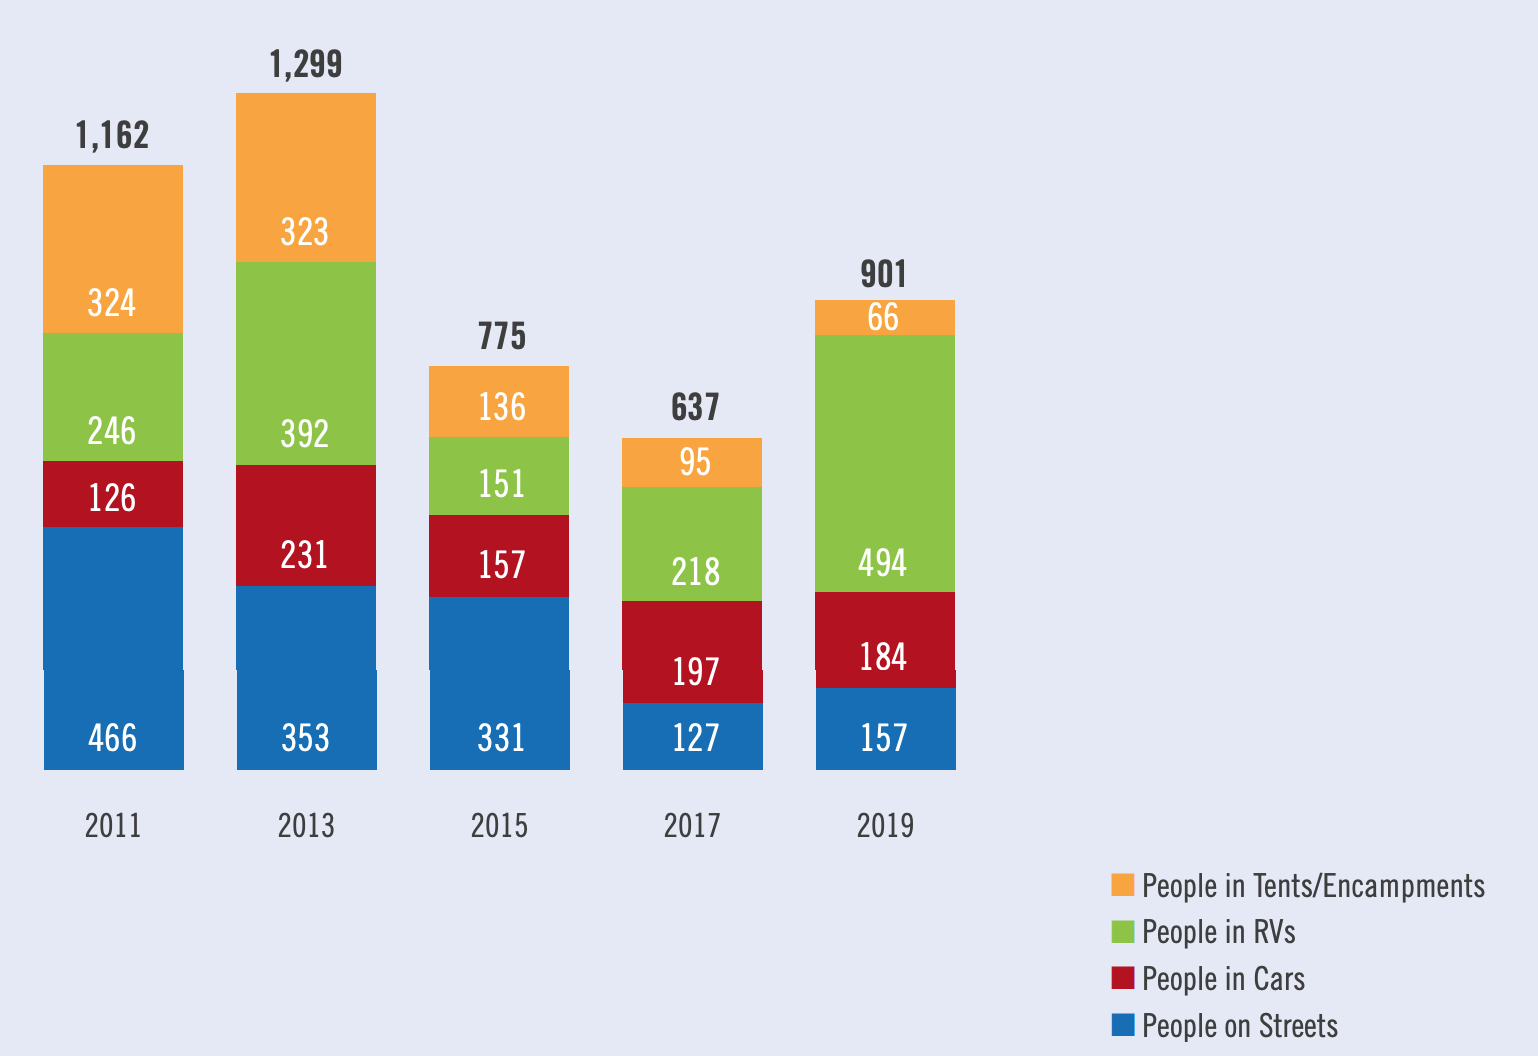 Between 2017 and 2019, the number of people living in RVs in San Mateo County rose from 218 to 494, according to data from the county's One-Day Homeless Count conducted in January. (Image courtesy San Mateo County Human Services Agency.)